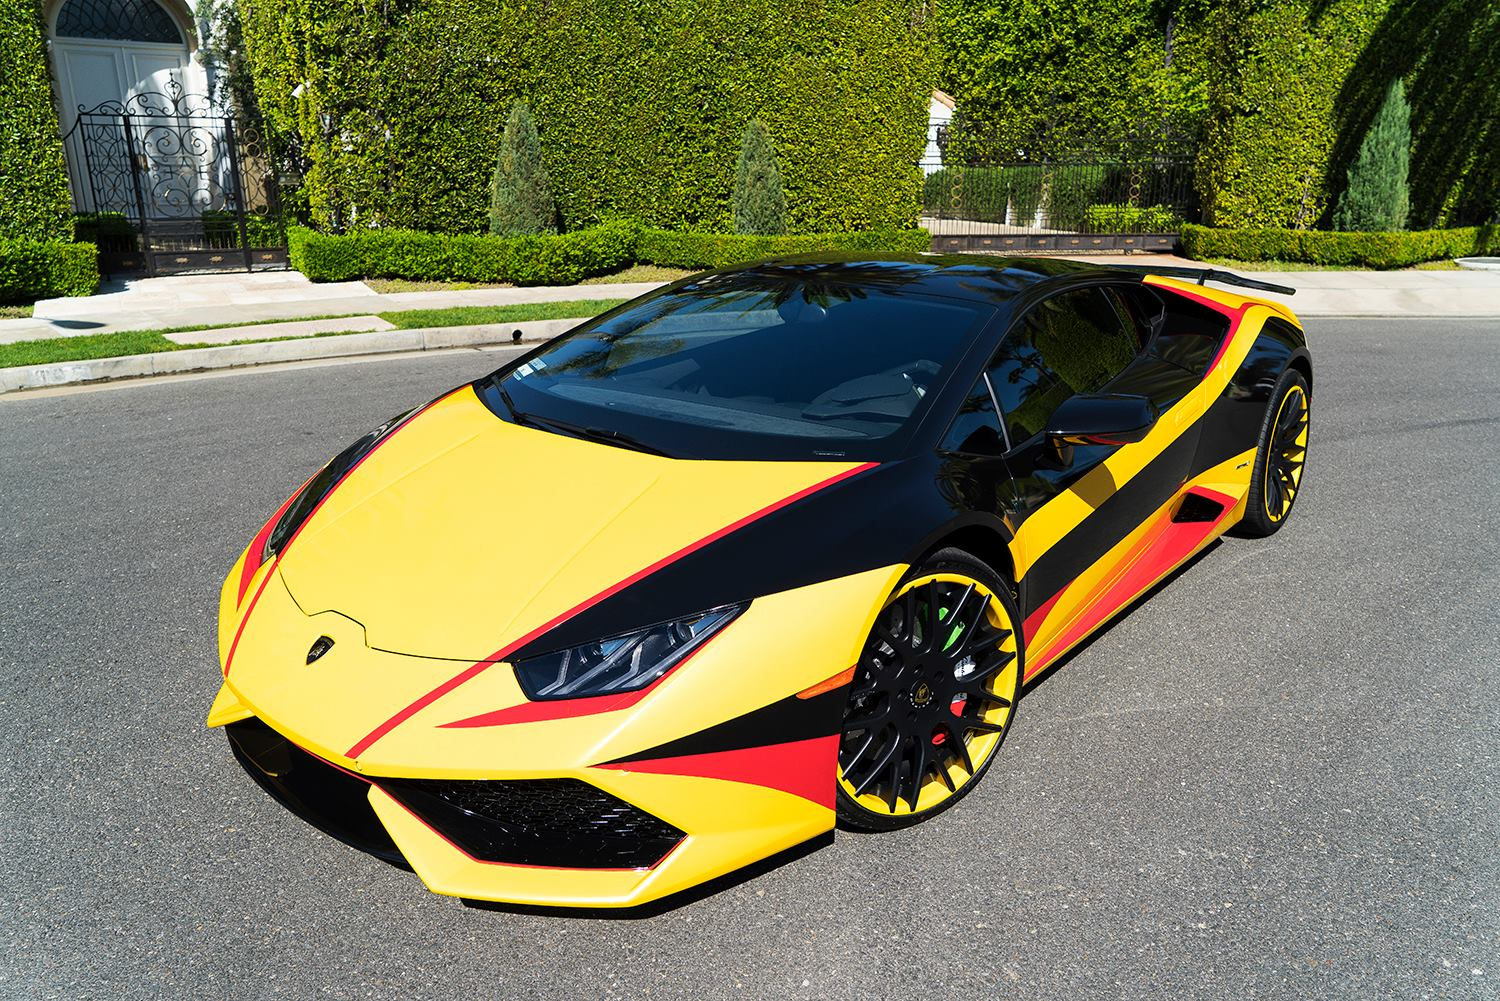 lamborghini huracan engine size lamborghini free engine. Black Bedroom Furniture Sets. Home Design Ideas